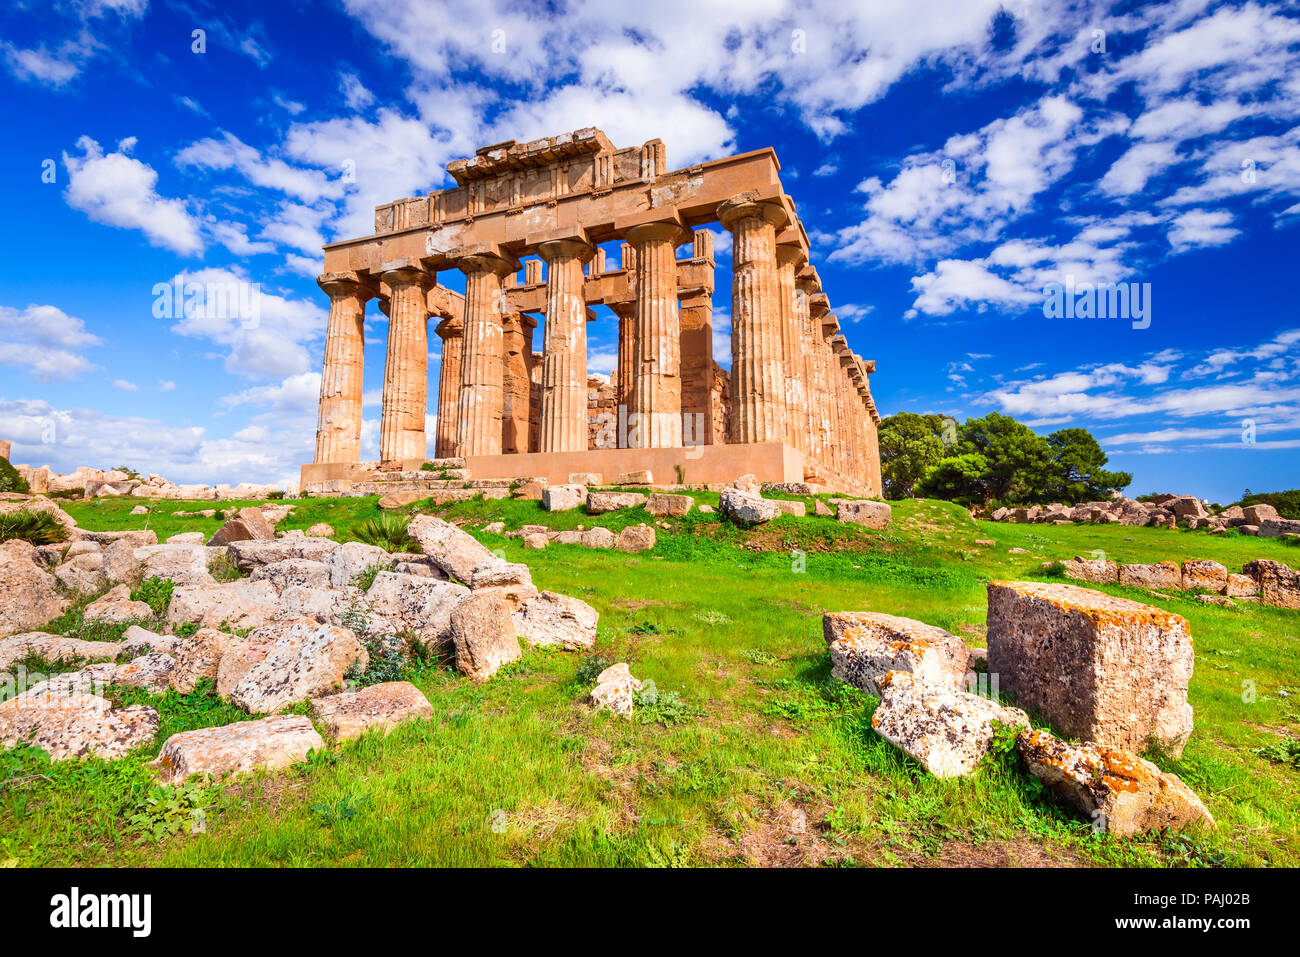 Selinunte, Sicily.  Temple of Hera, ancient Greek ruins in Italy, Doric architecture. - Stock Image